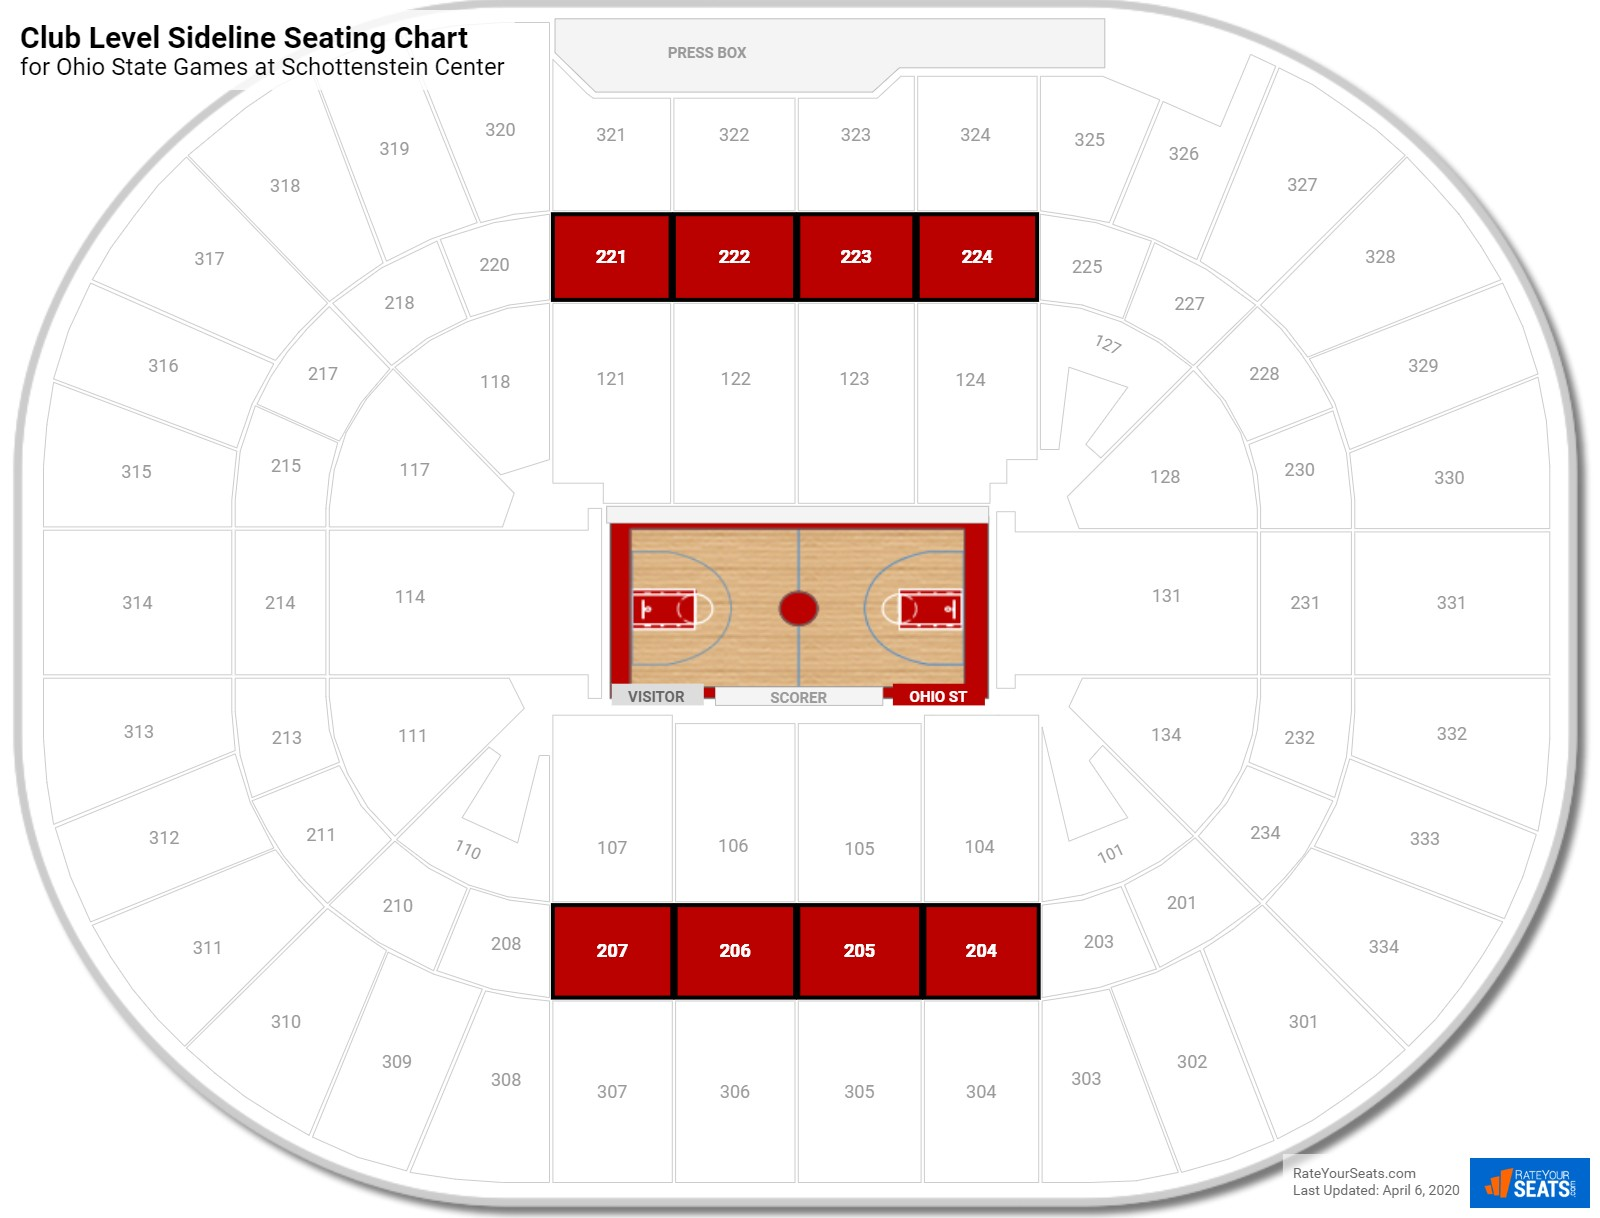 Schottenstein Center Club Level Sideline Seating Chart